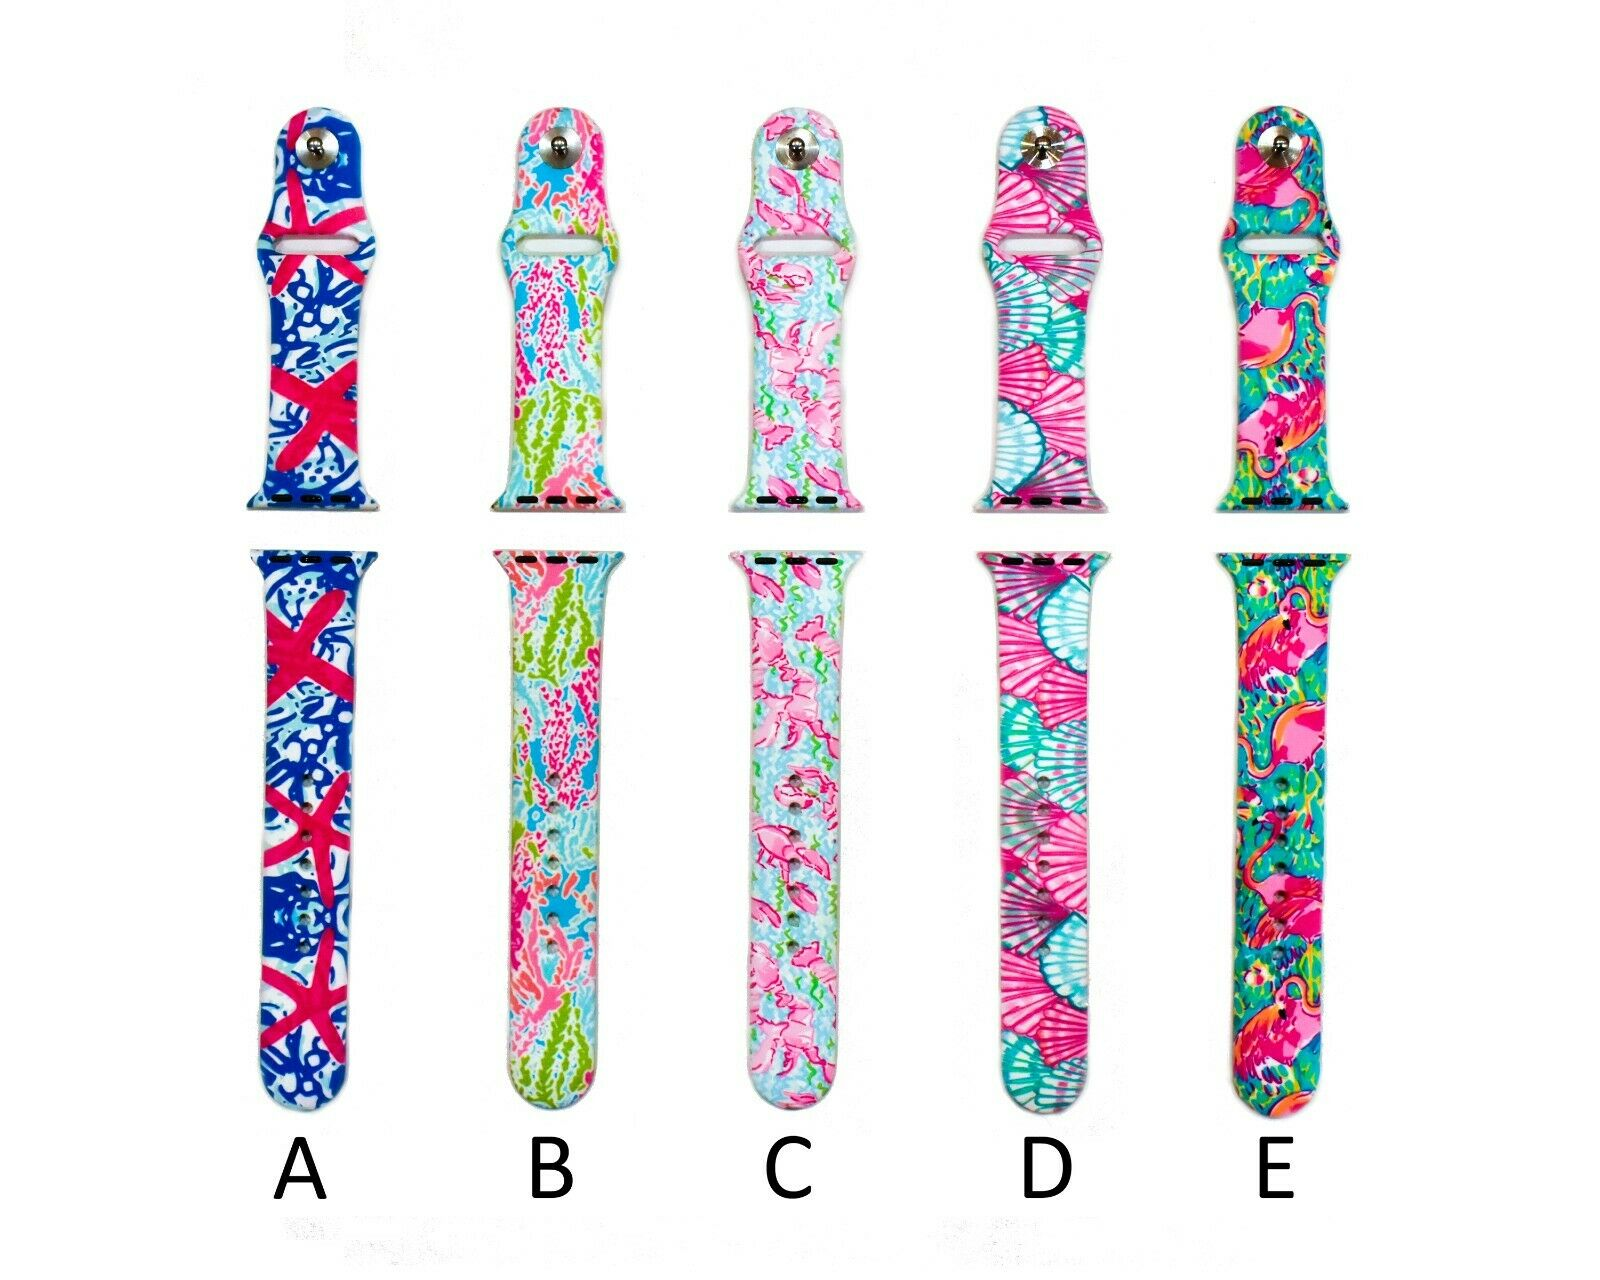 Silicone Watch Band Straps for Aple Watch 38mm & 42mm Series 1, 2, 3, 4 or 5